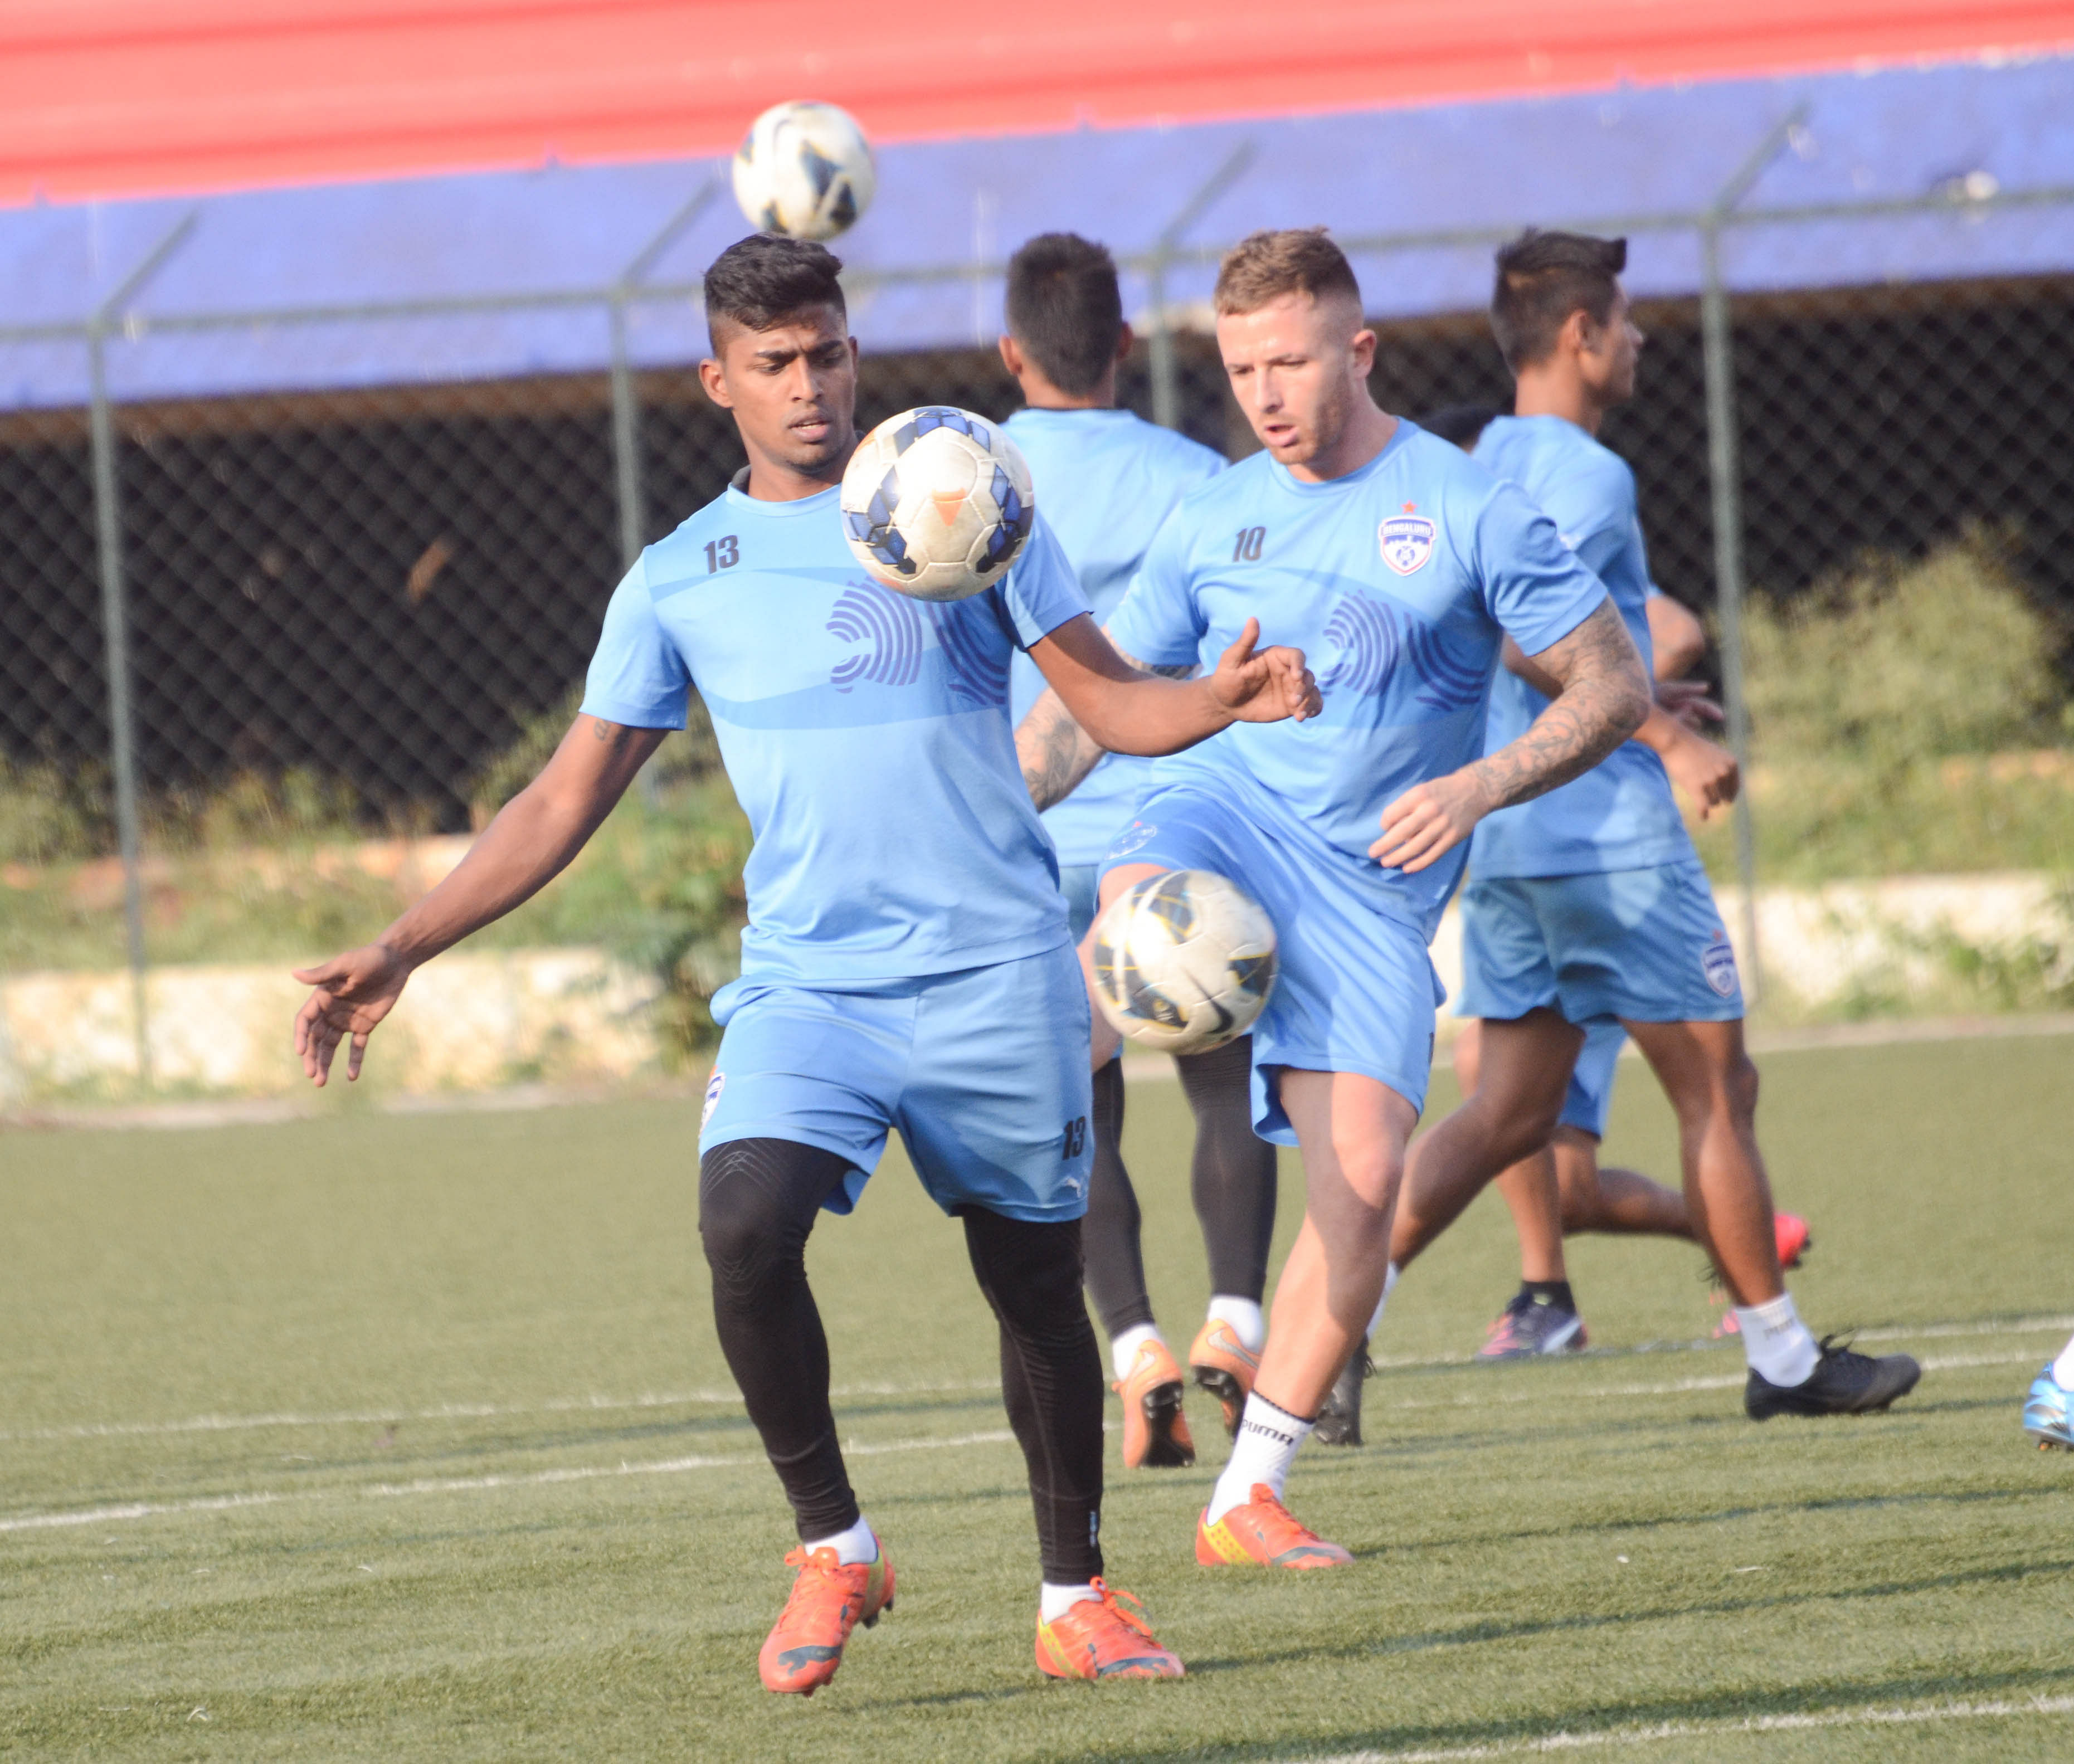 I-League: Momentum with Bengaluru FC as Lajong come to town looking for a win